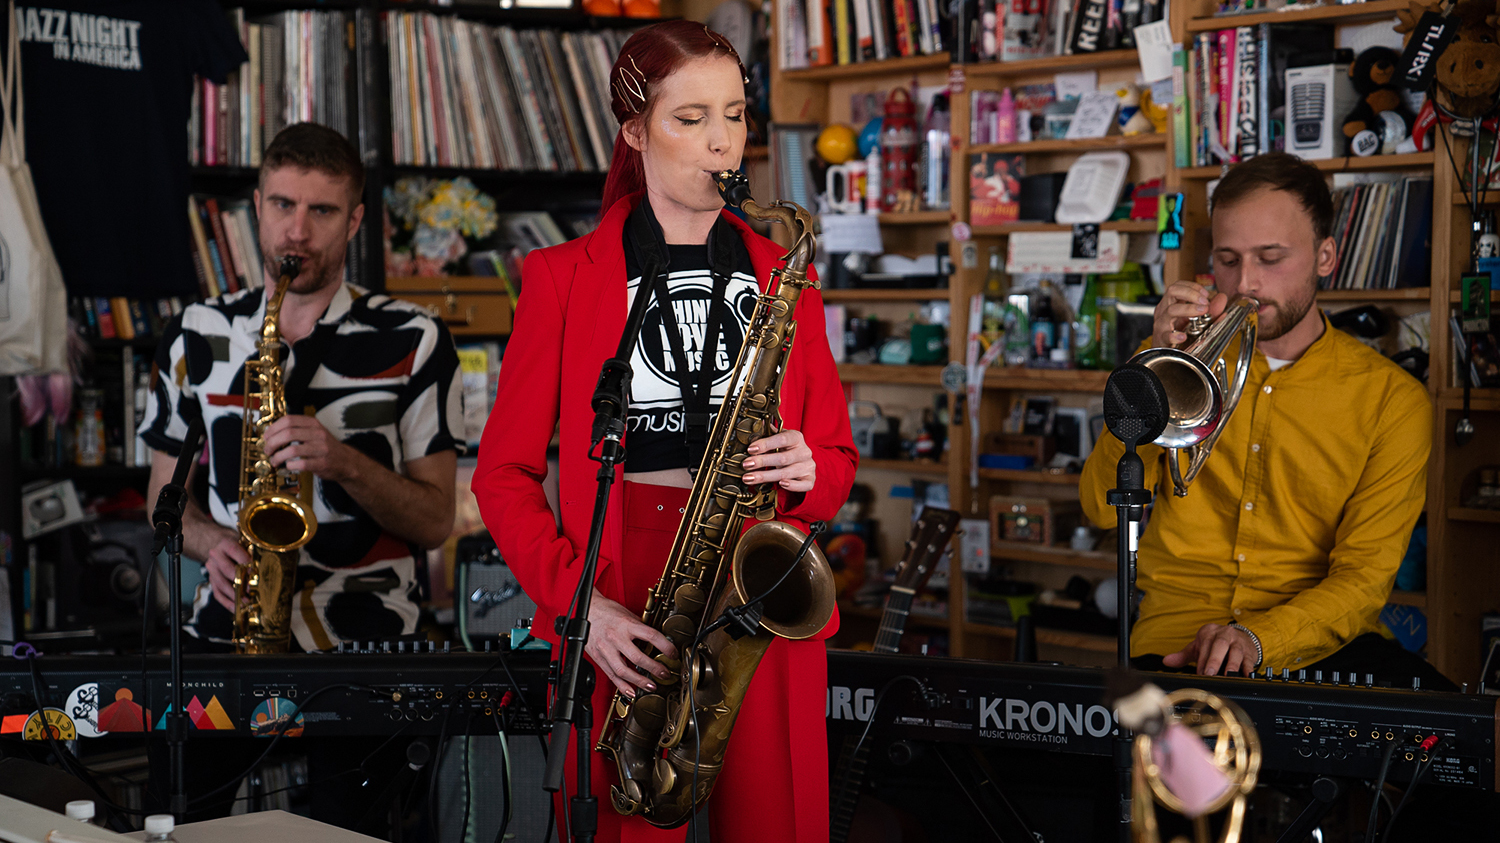 Moonchild performs during a Tiny Desk concert, on Oct. 17, 2019. (Catie Dull/NPR)